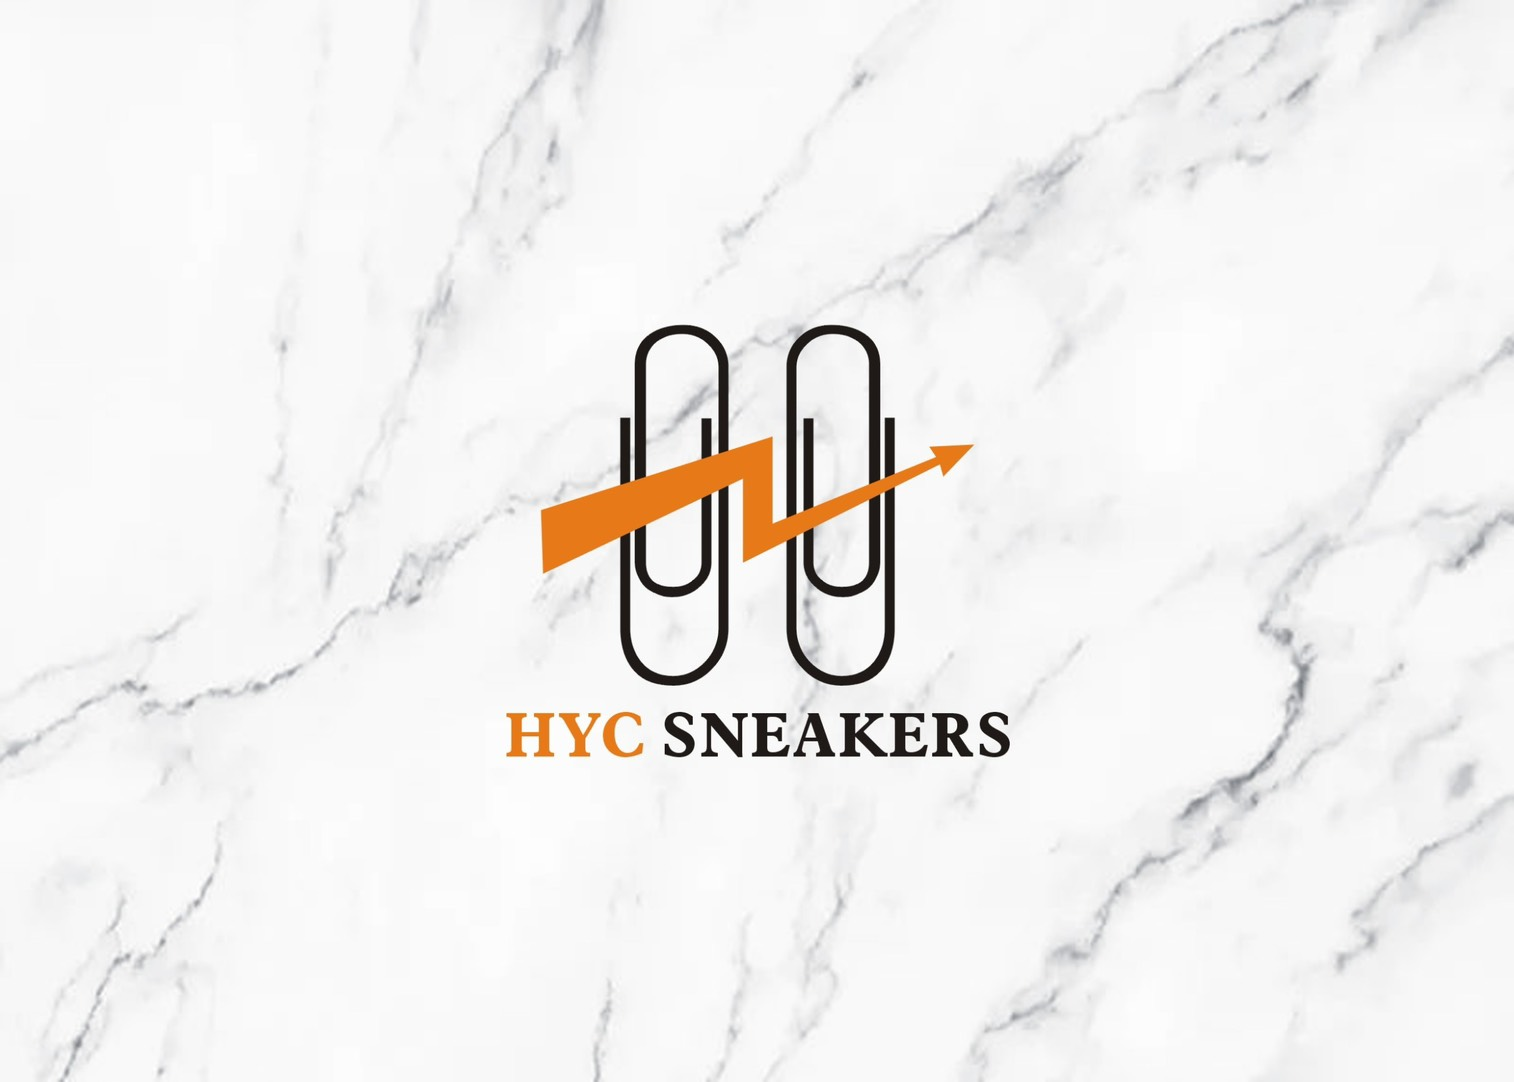 HYC SNEAKERS